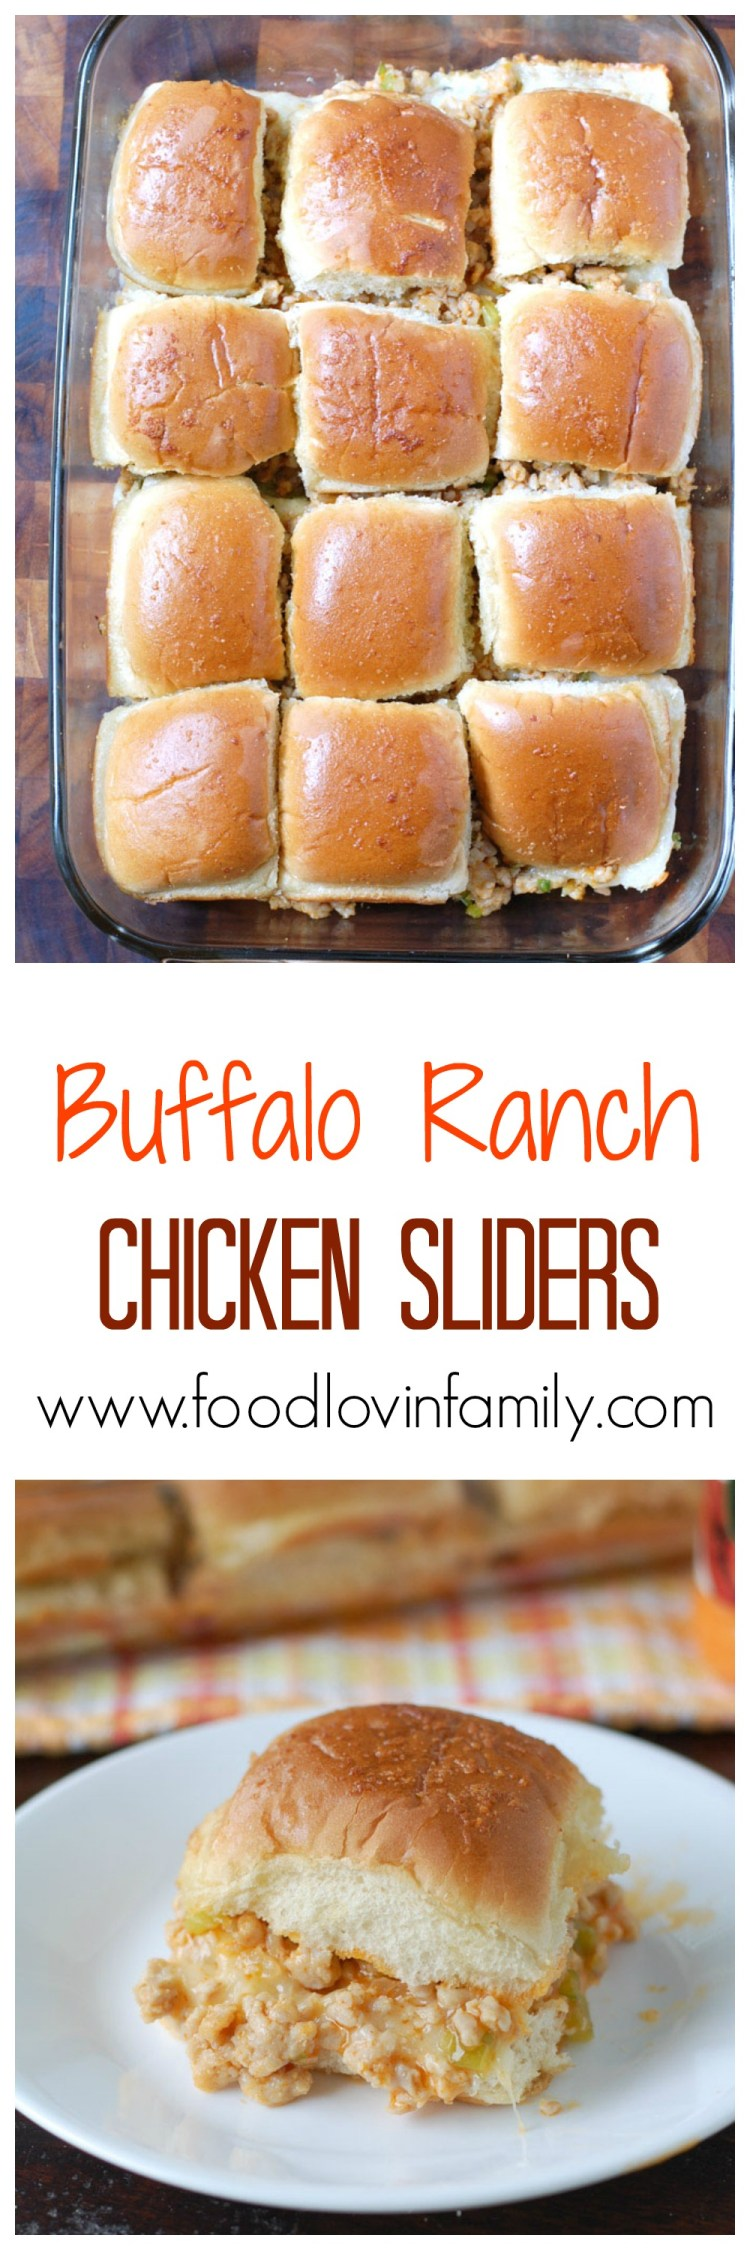 Buffalo Ranch Chicken Sliders are made with ground chicken, celery, onion and creamy ranch buffalo wing sauce.The perfect tailgating or party food.